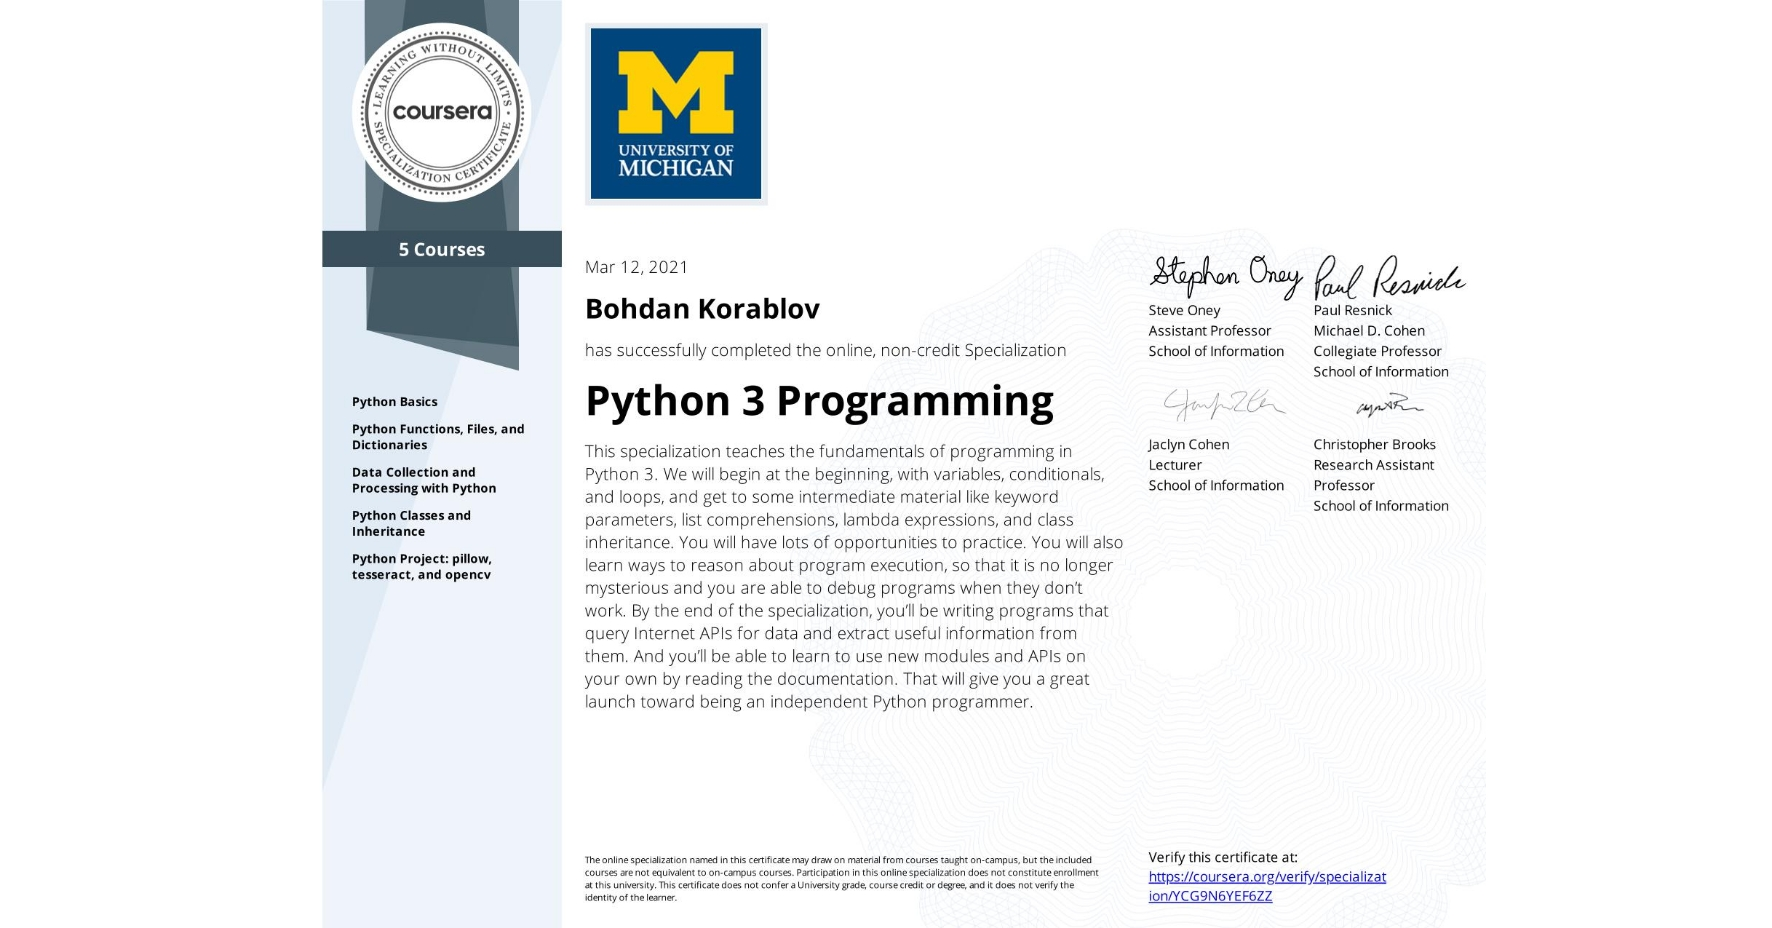 View certificate for Bohdan Korablov, Python 3 Programming, offered through Coursera. This specialization teaches the fundamentals of programming in Python 3. We will begin at the beginning, with variables, conditionals, and loops, and get to some intermediate material like keyword parameters, list comprehensions, lambda expressions, and class inheritance.  You will have lots of opportunities to practice. You will also learn ways to reason about program execution, so that it is no longer mysterious and you are able to debug programs when they don't work.  By the end of the specialization, you'll be writing programs that query Internet APIs for data and extract useful information from them. And you'll be able to learn to use new modules and APIs on your own by reading the documentation. That will give you a great launch toward being an independent Python programmer.